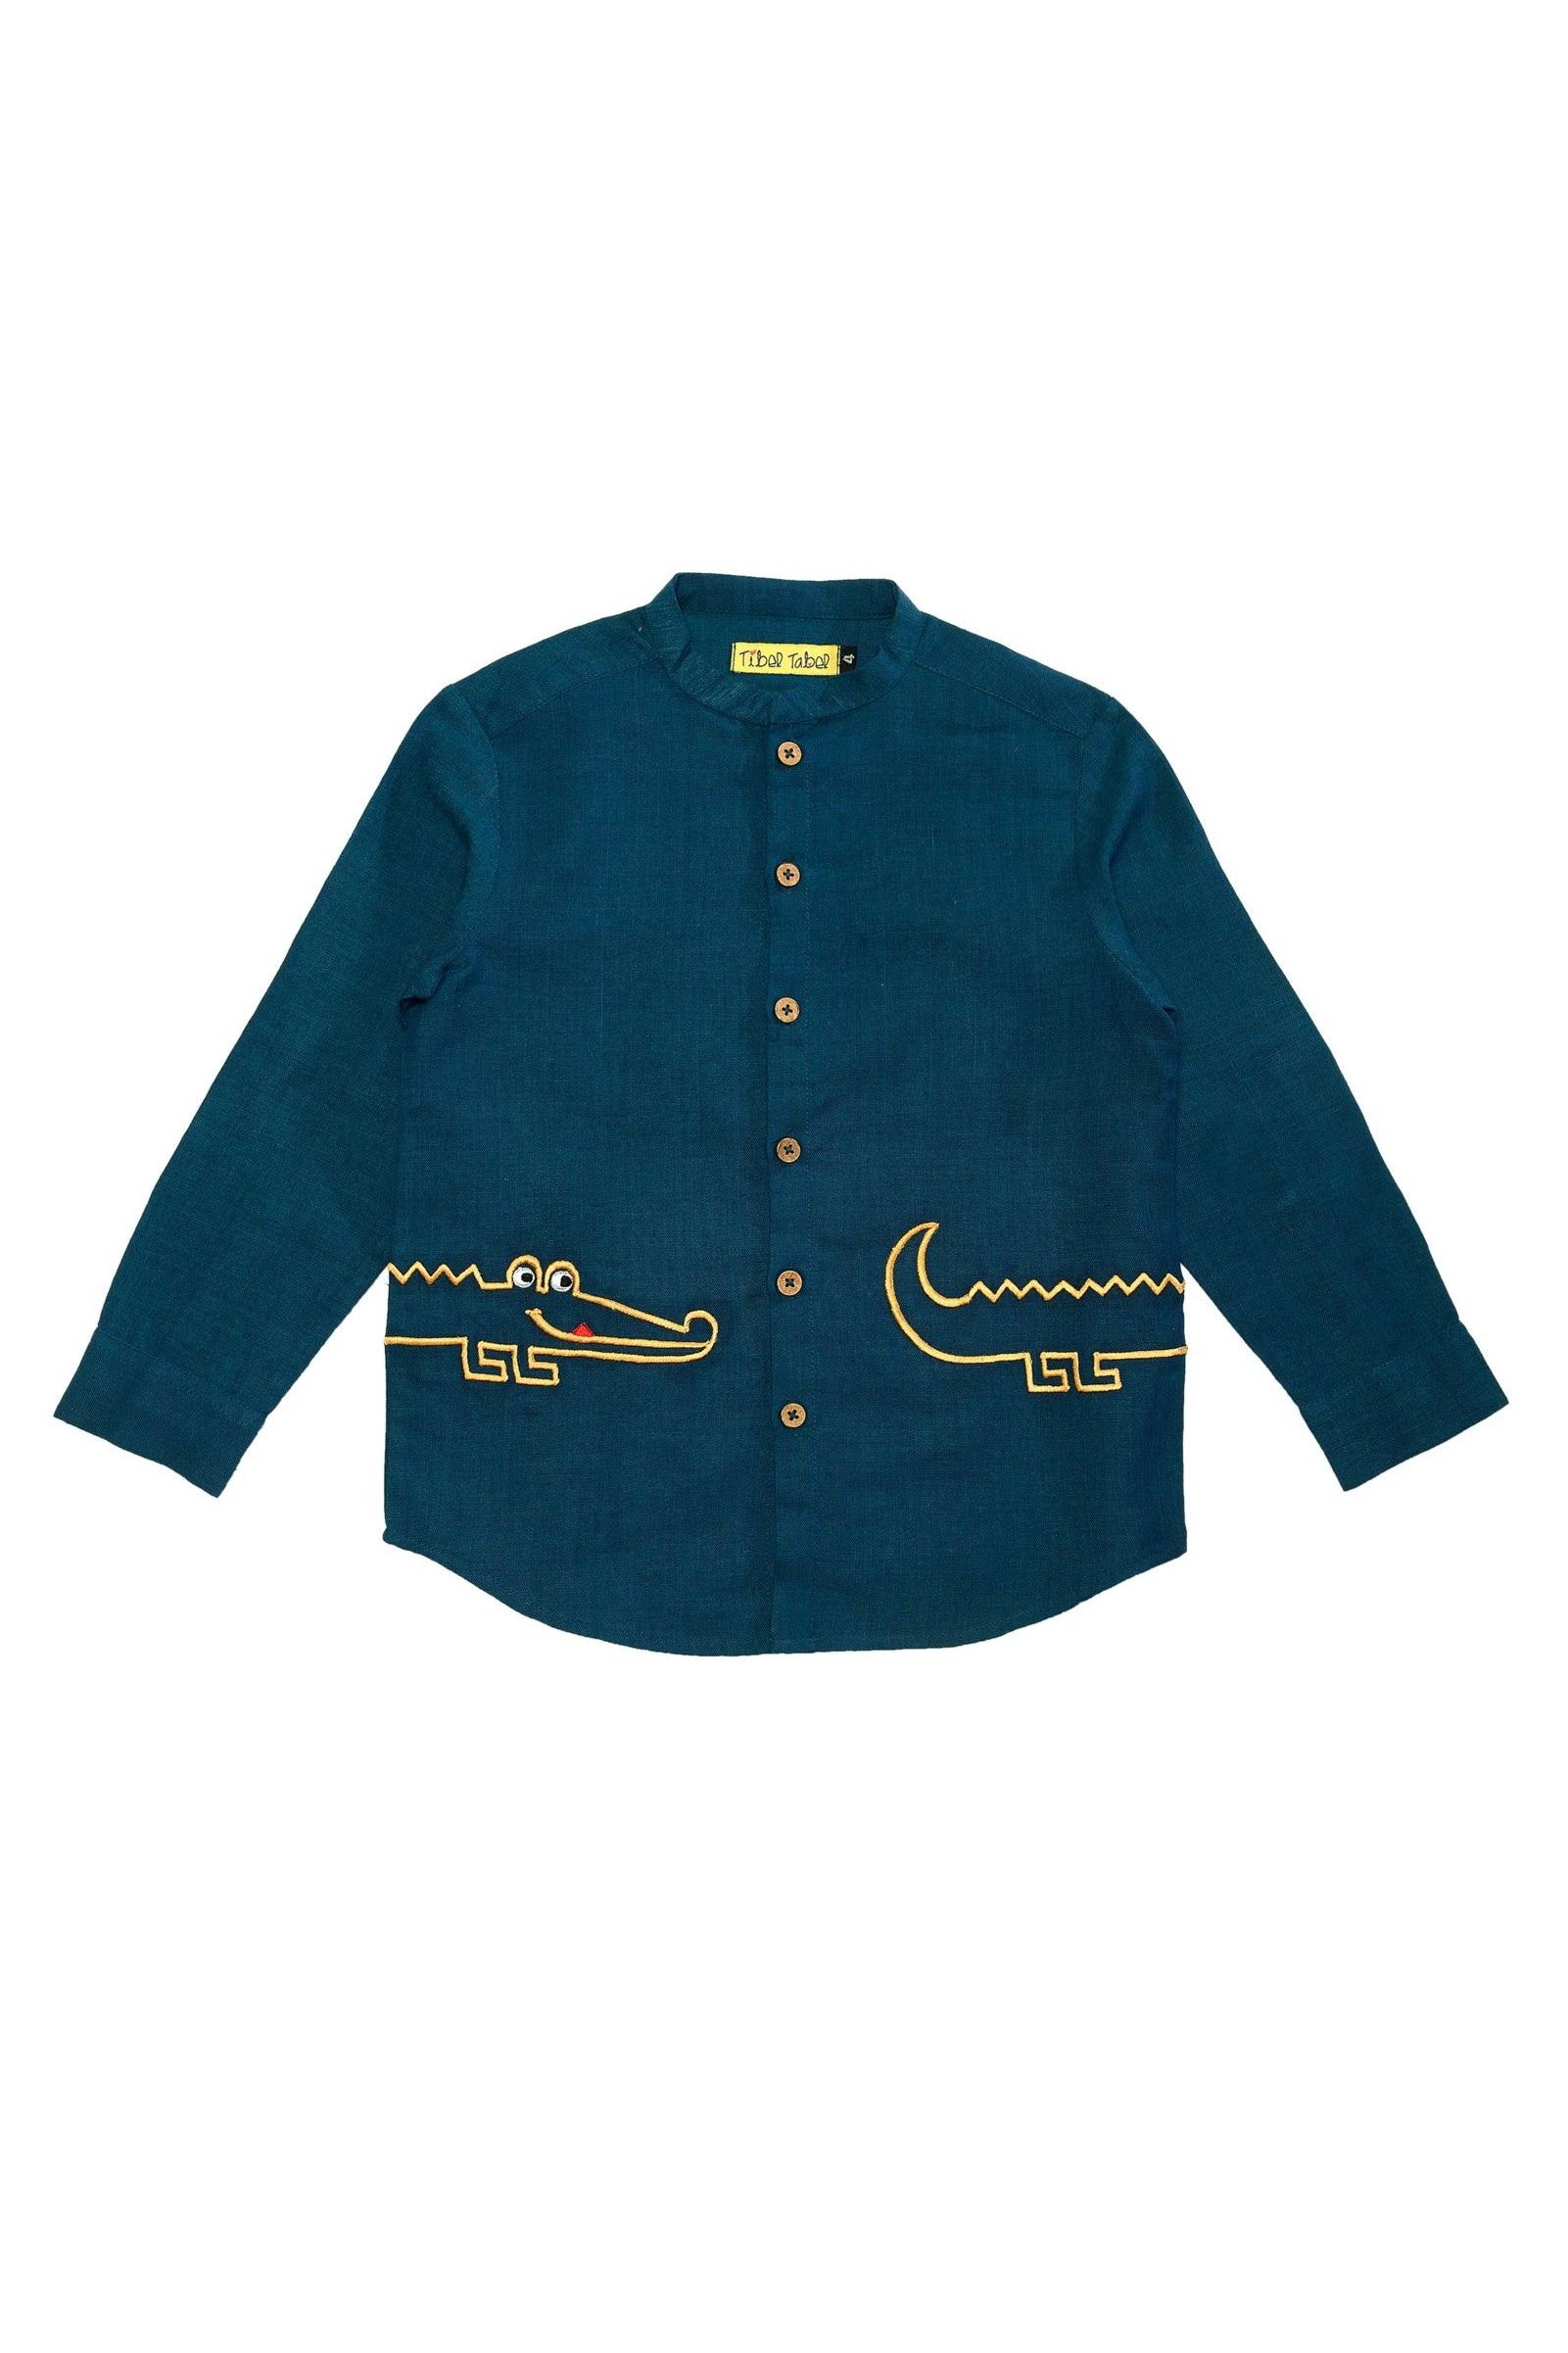 Boy Teal Crocodile Shirt